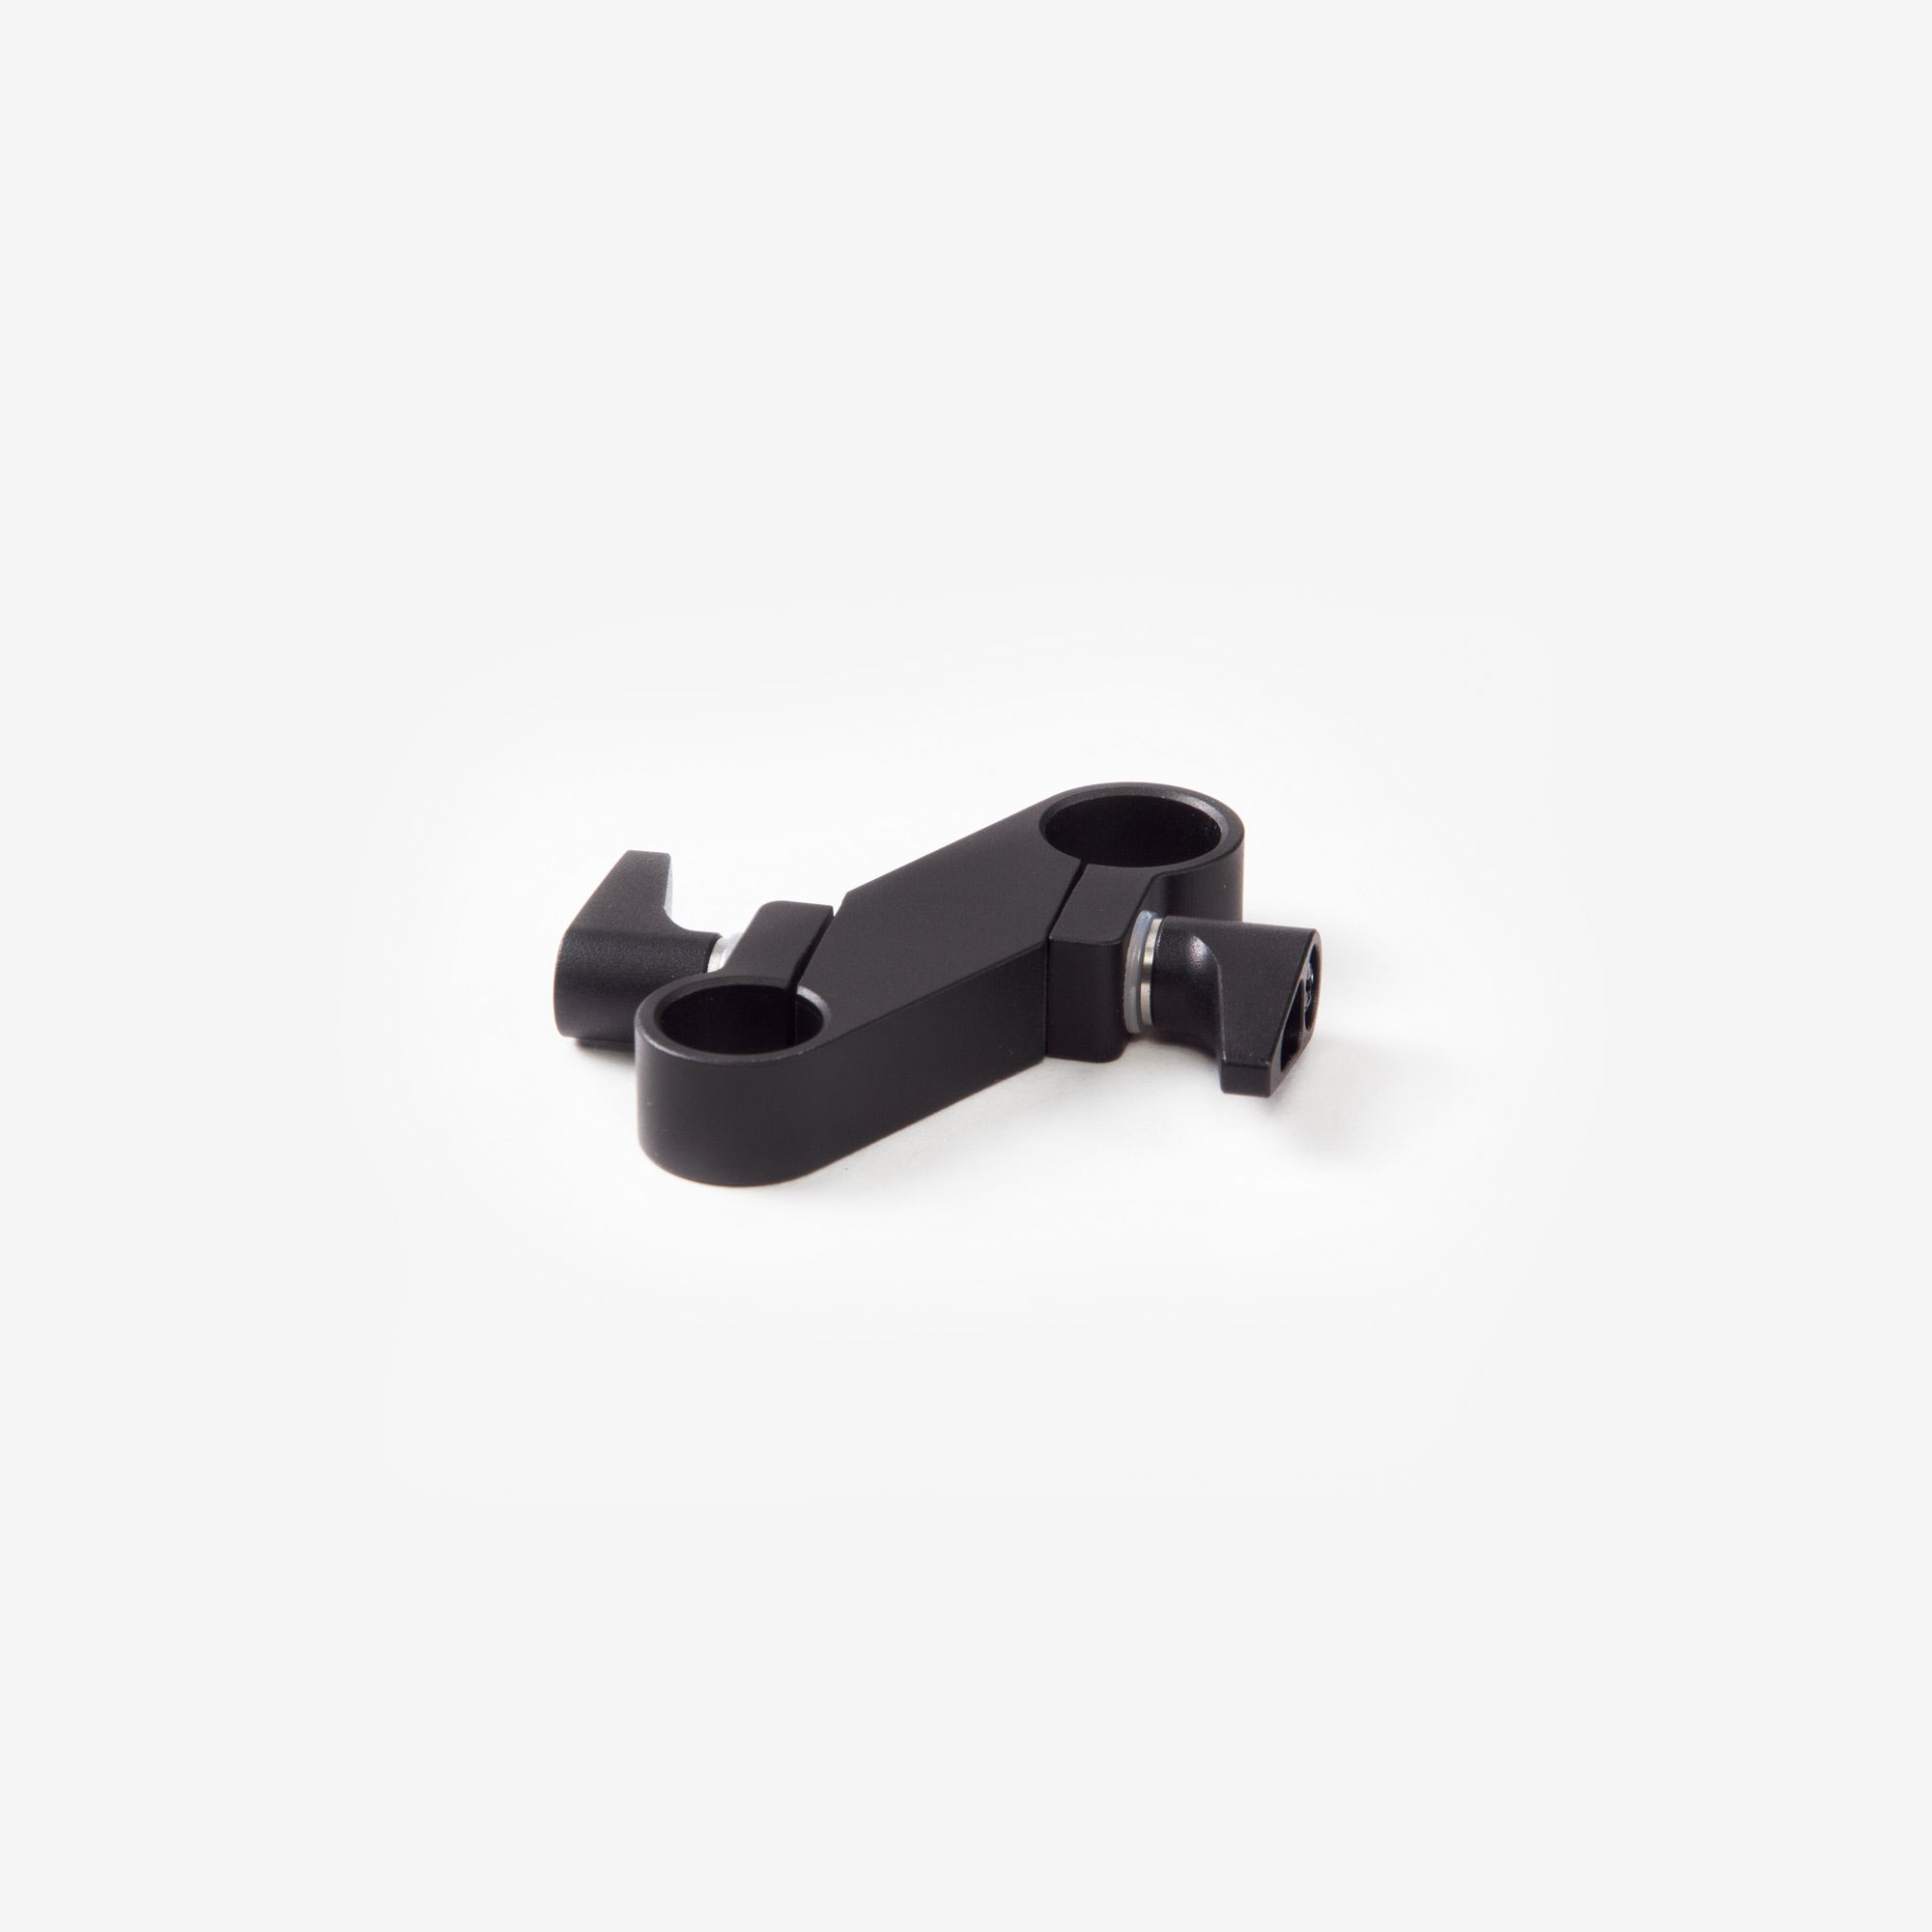 13mm to 15mm Double Clamp Mount